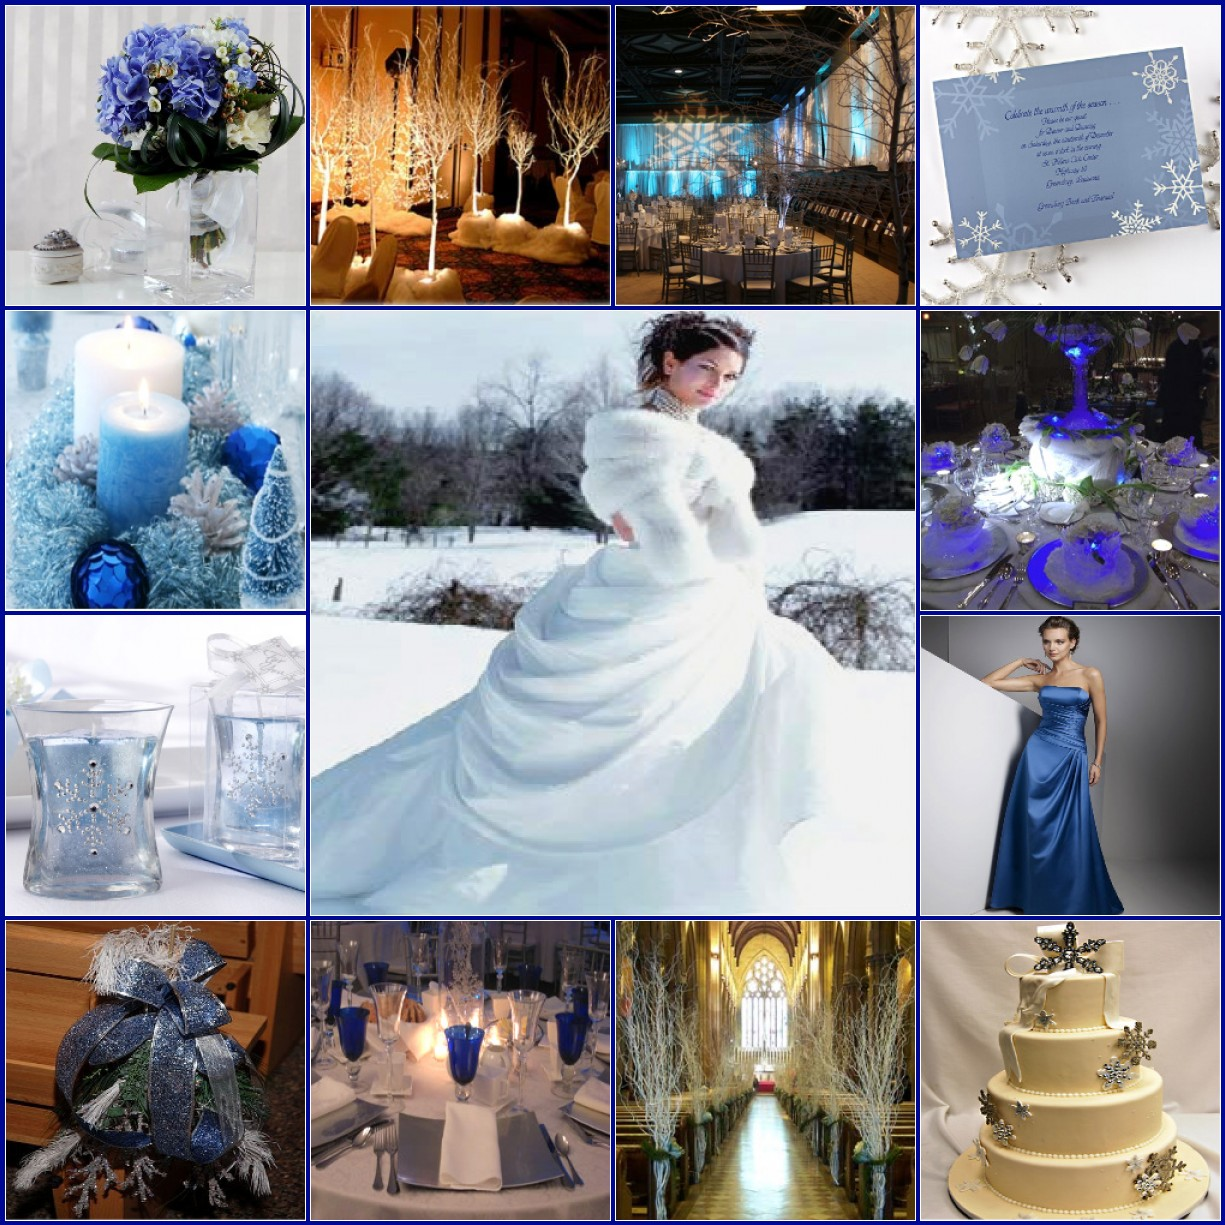 wedding ideas for a winter wedding winter wedding ideas blackhorseinnblog 28110